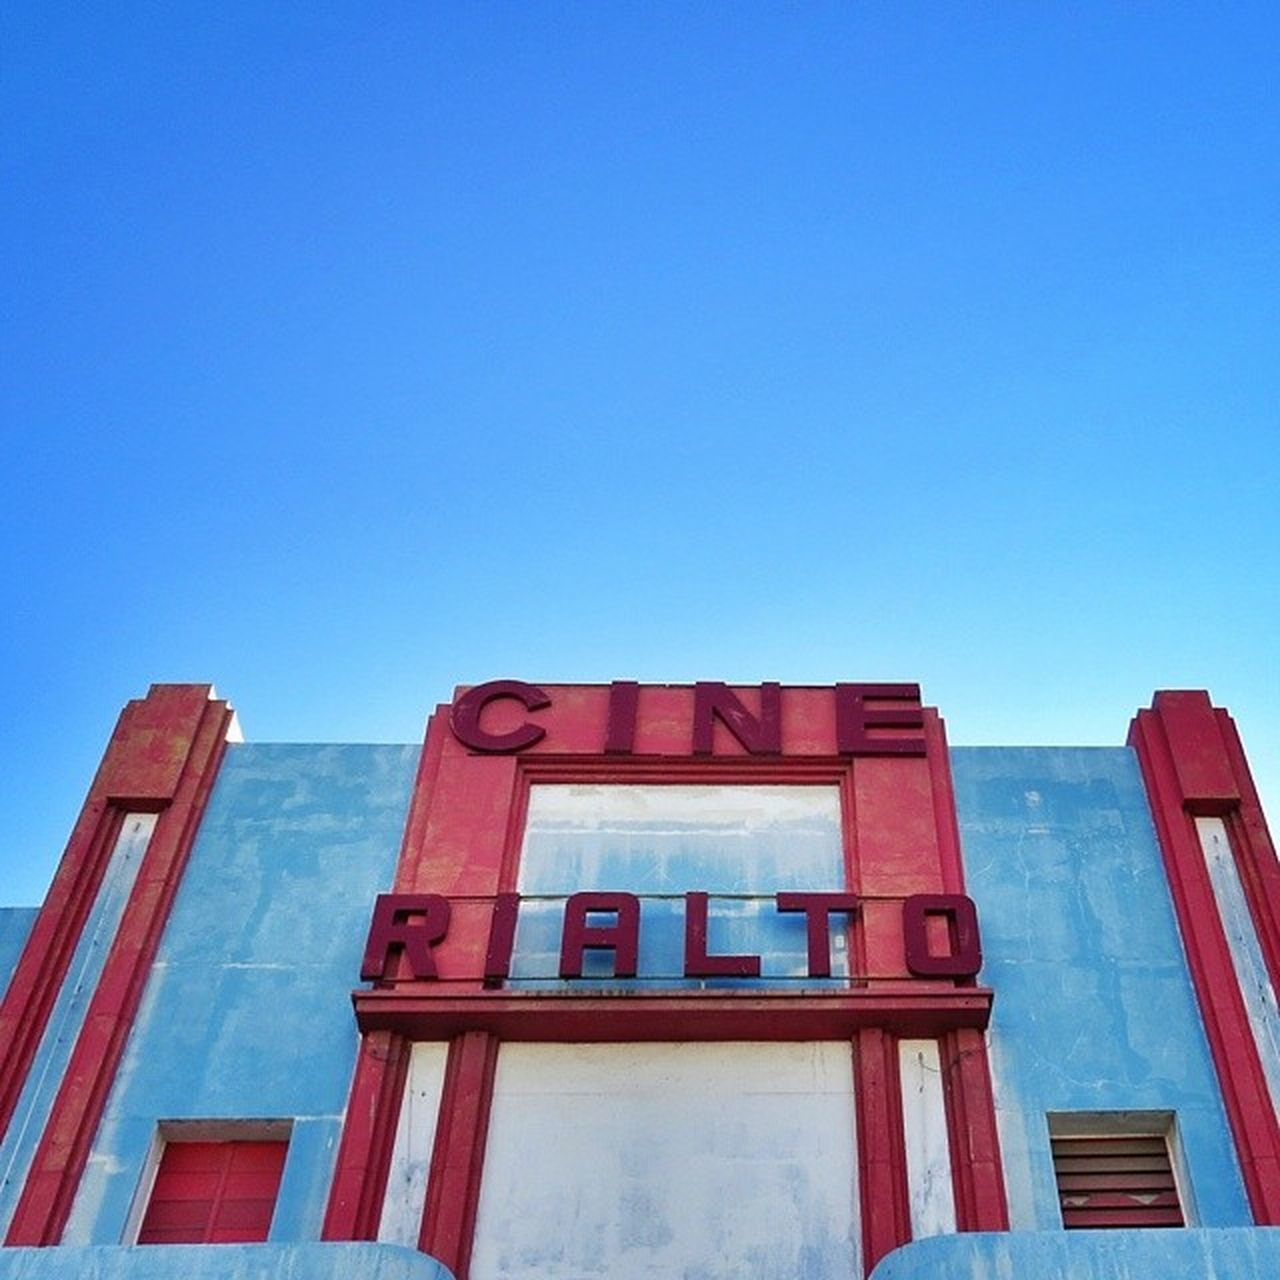 building exterior, blue, architecture, low angle view, built structure, copy space, day, clear sky, no people, red, outdoors, sky